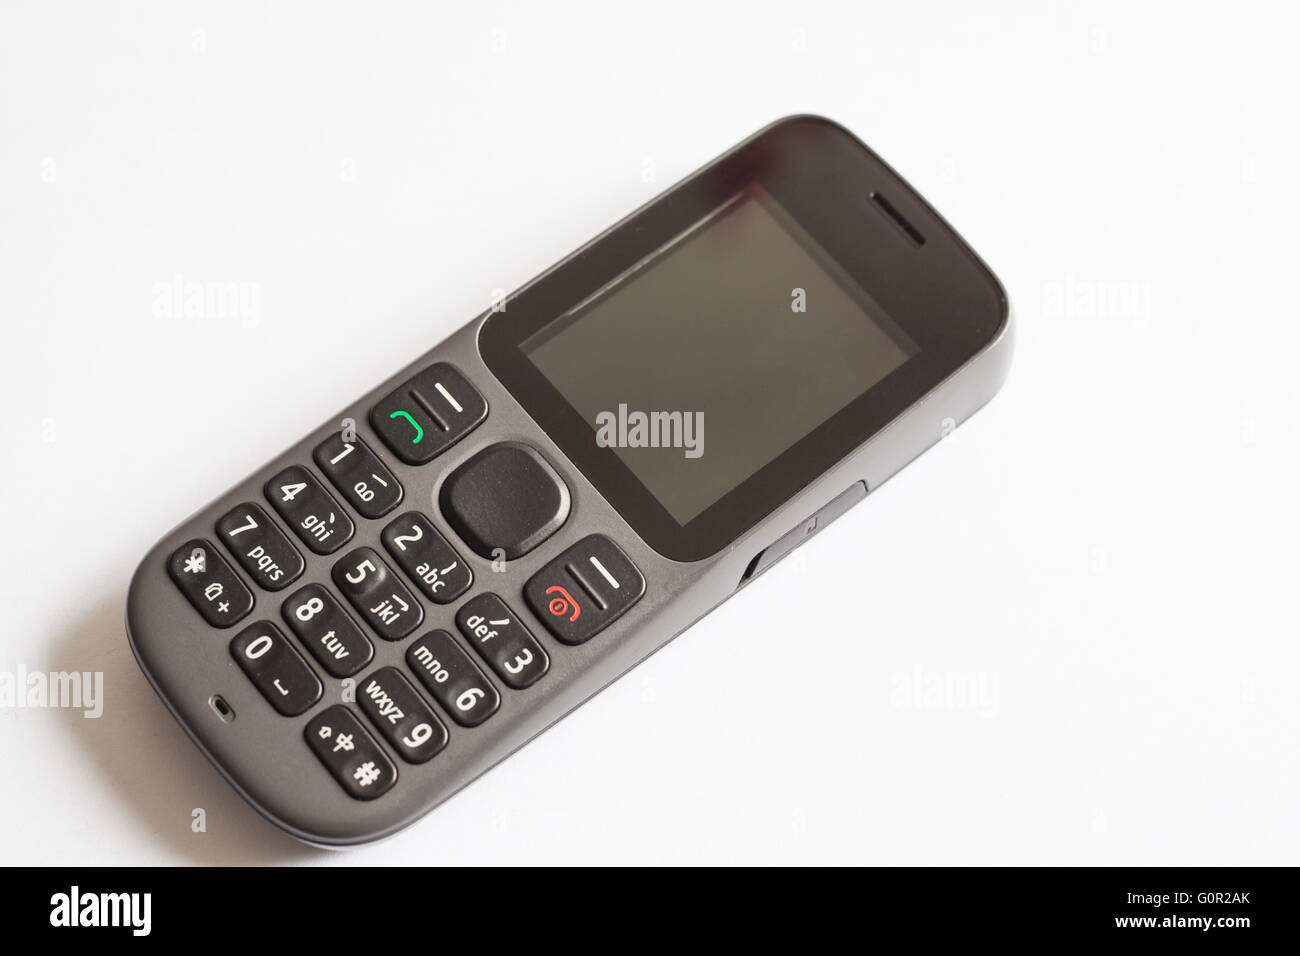 Old style cellphone with chinese symbols on keyboard stock photo old style cellphone with chinese symbols on keyboard biocorpaavc Images